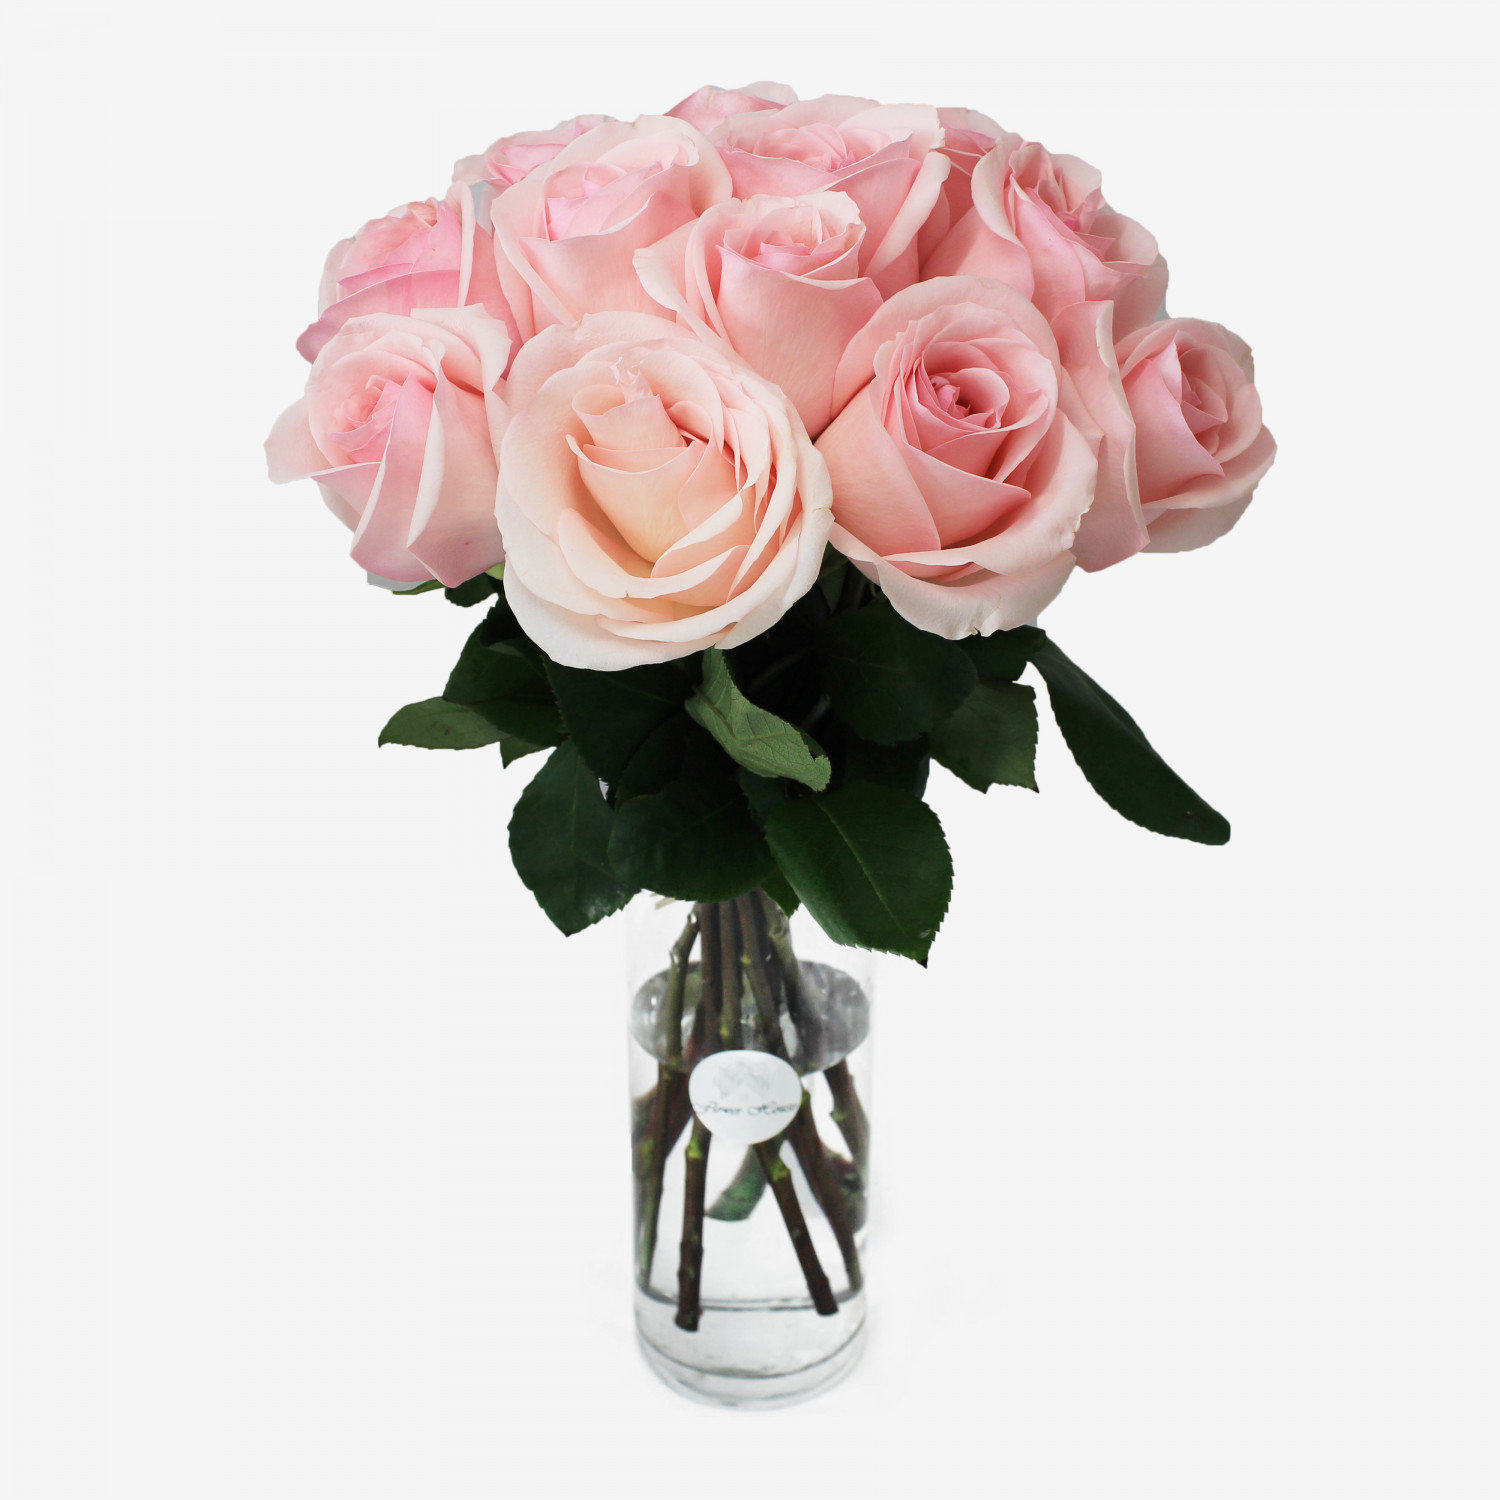 12 Novia Light Pink Roses Bouquet